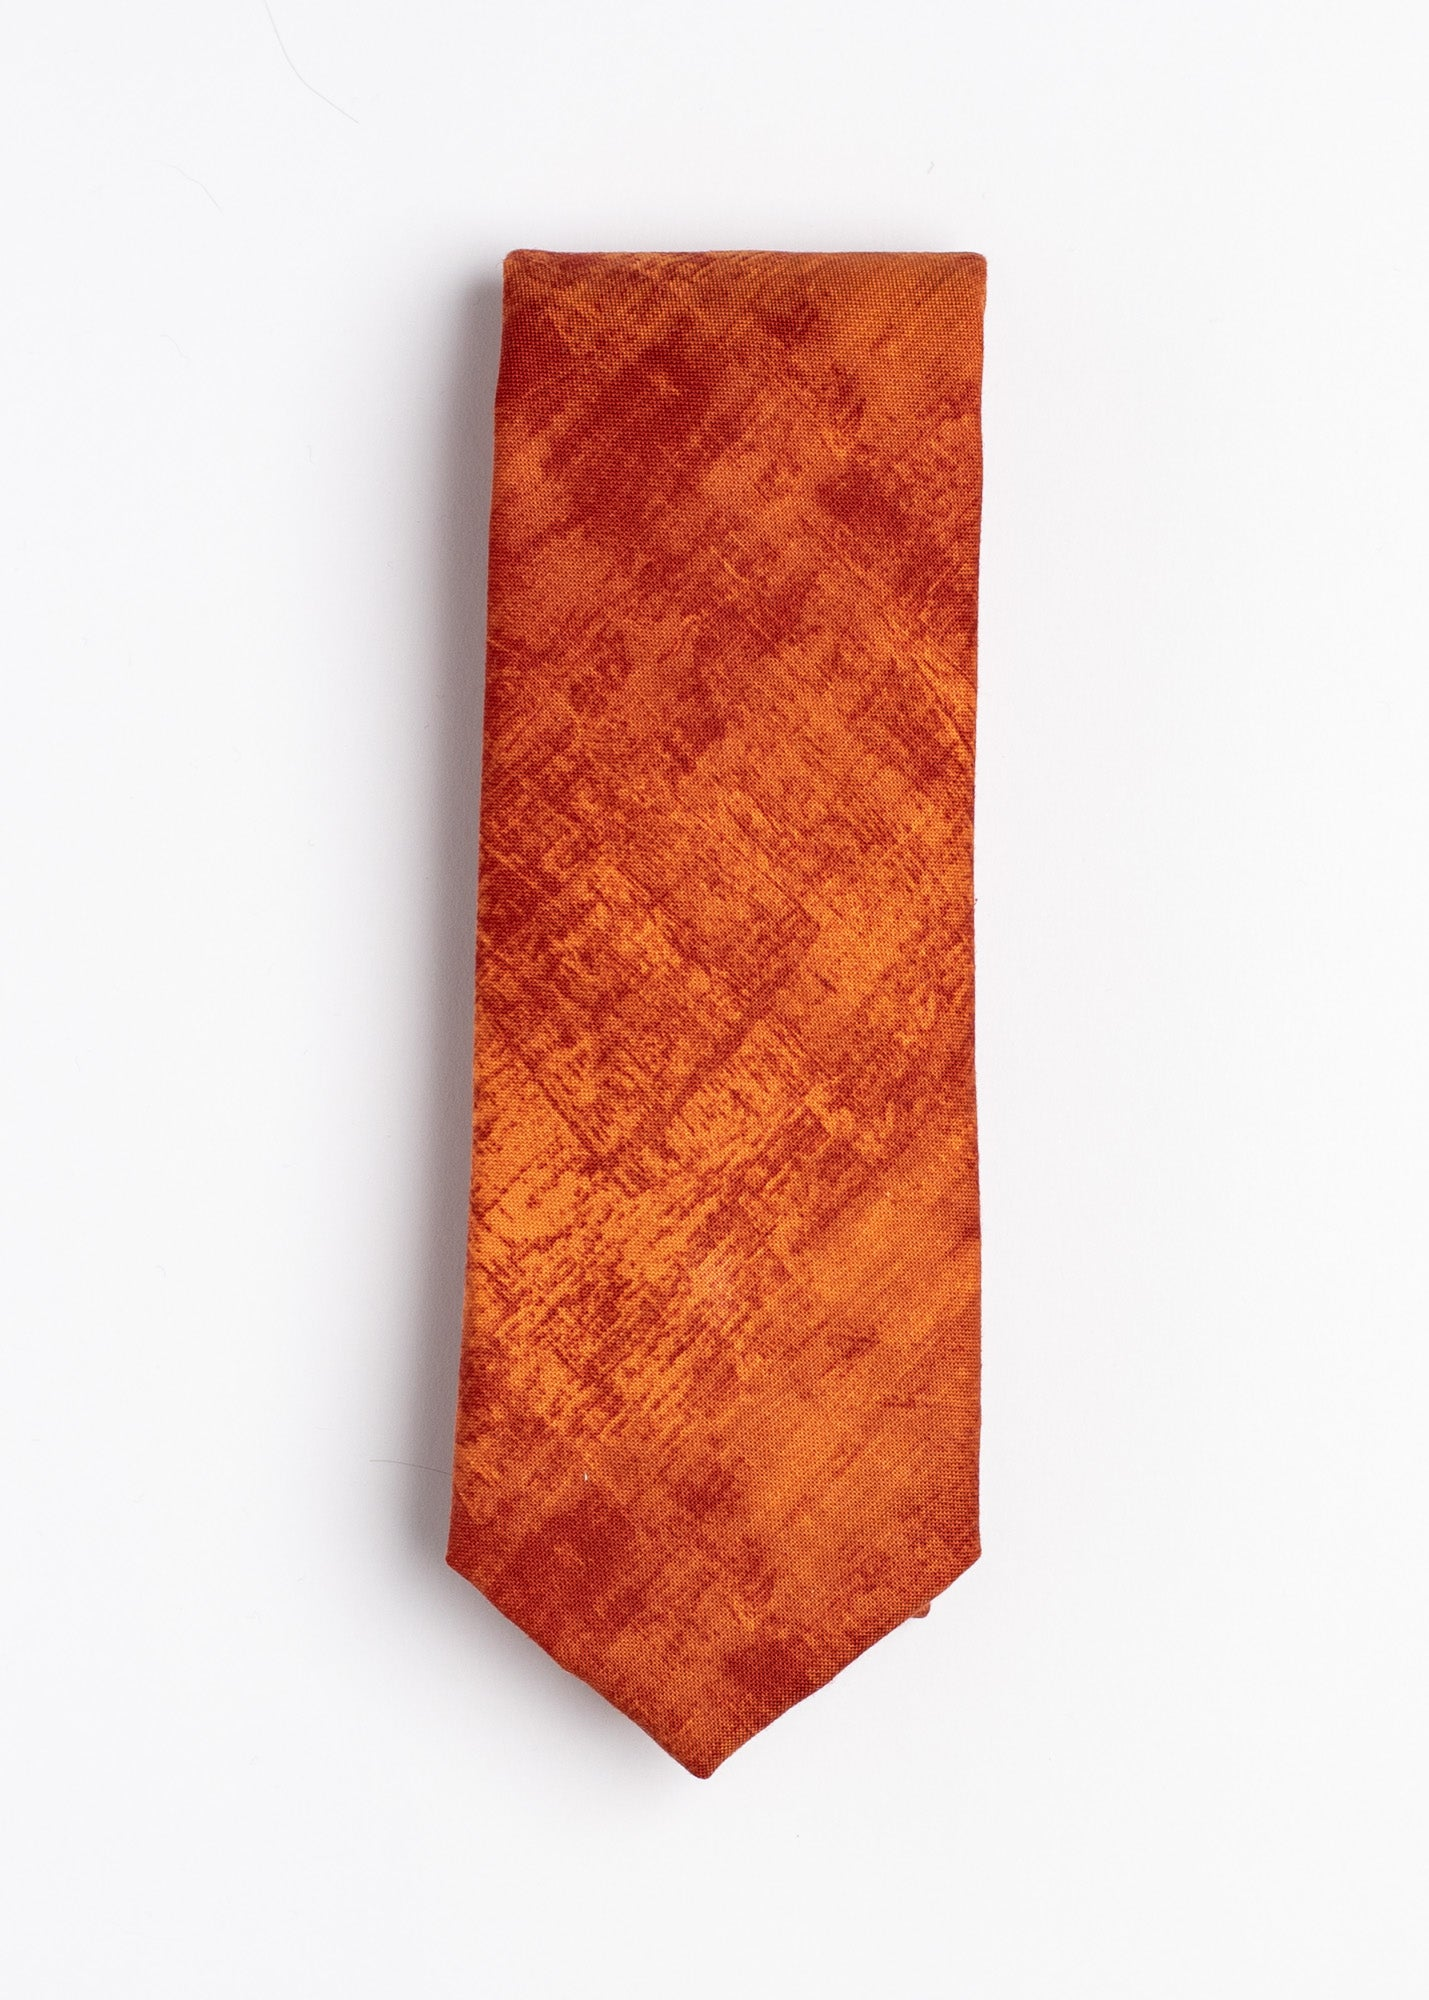 plain orange tie - Oxford Square